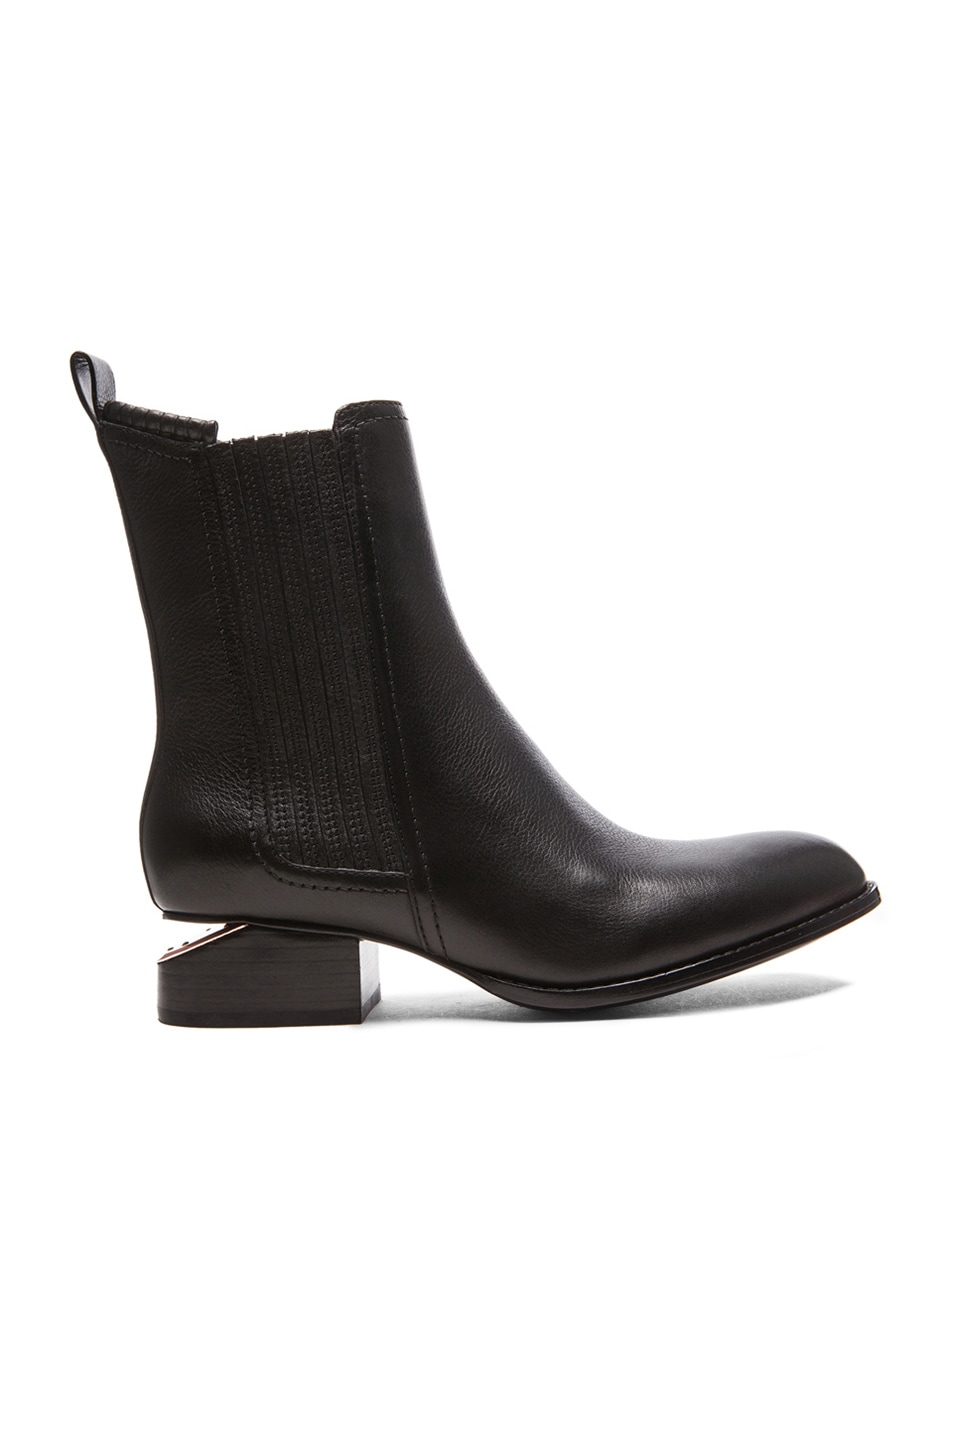 Image 1 of Alexander Wang Anouck Chelsea Leather Boots with Rose Gold Hardware in Black